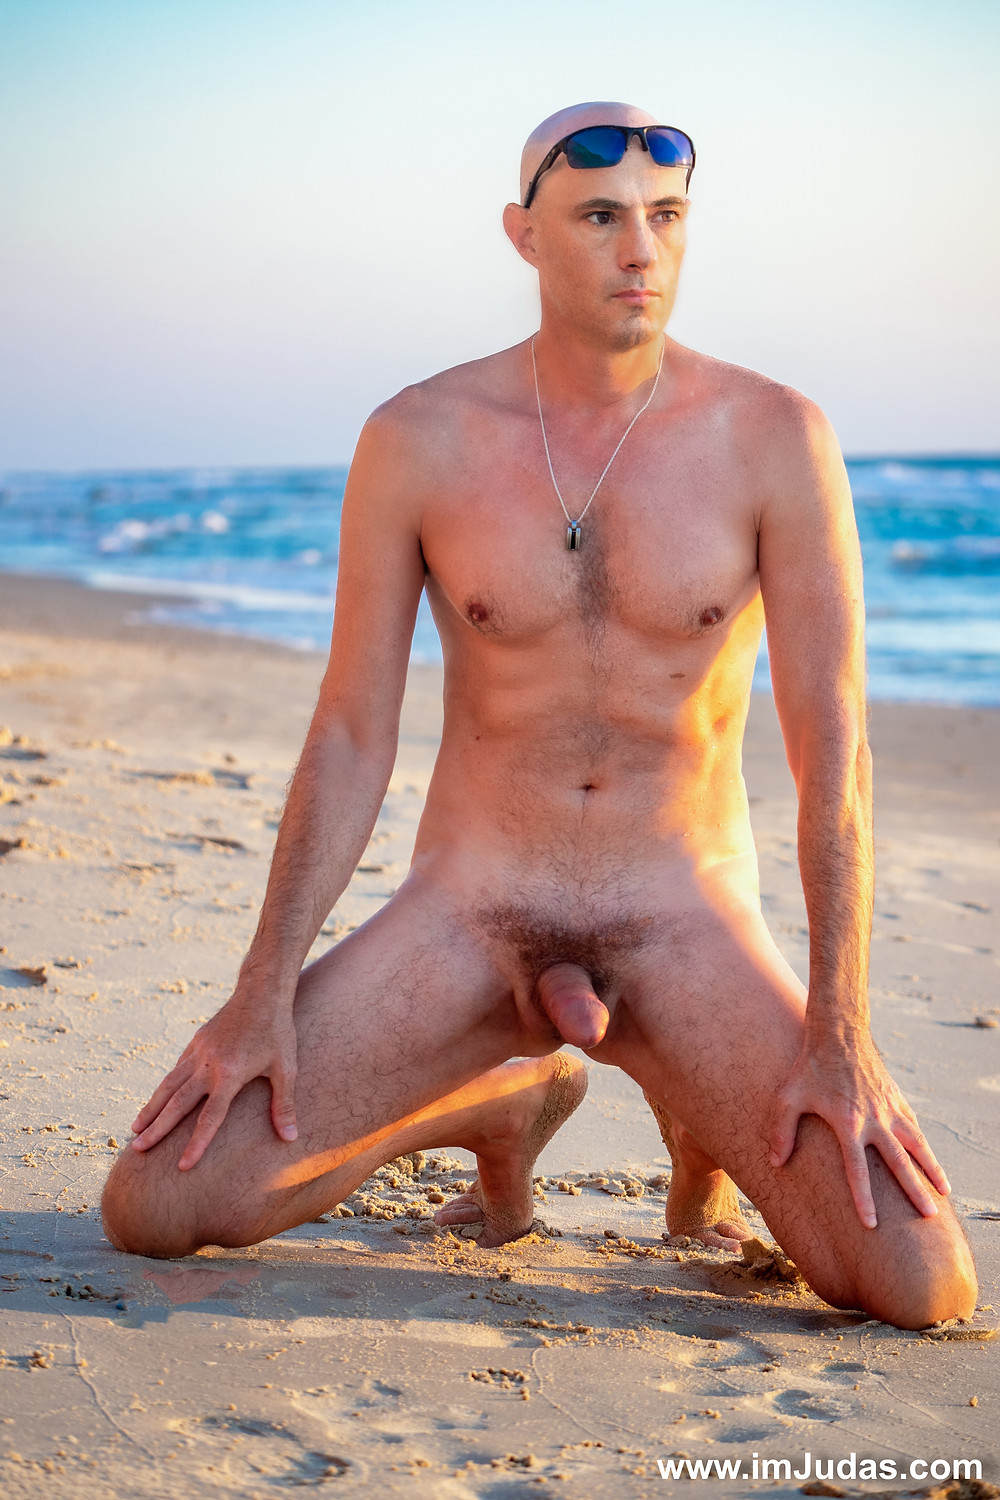 naked and hard at the beach